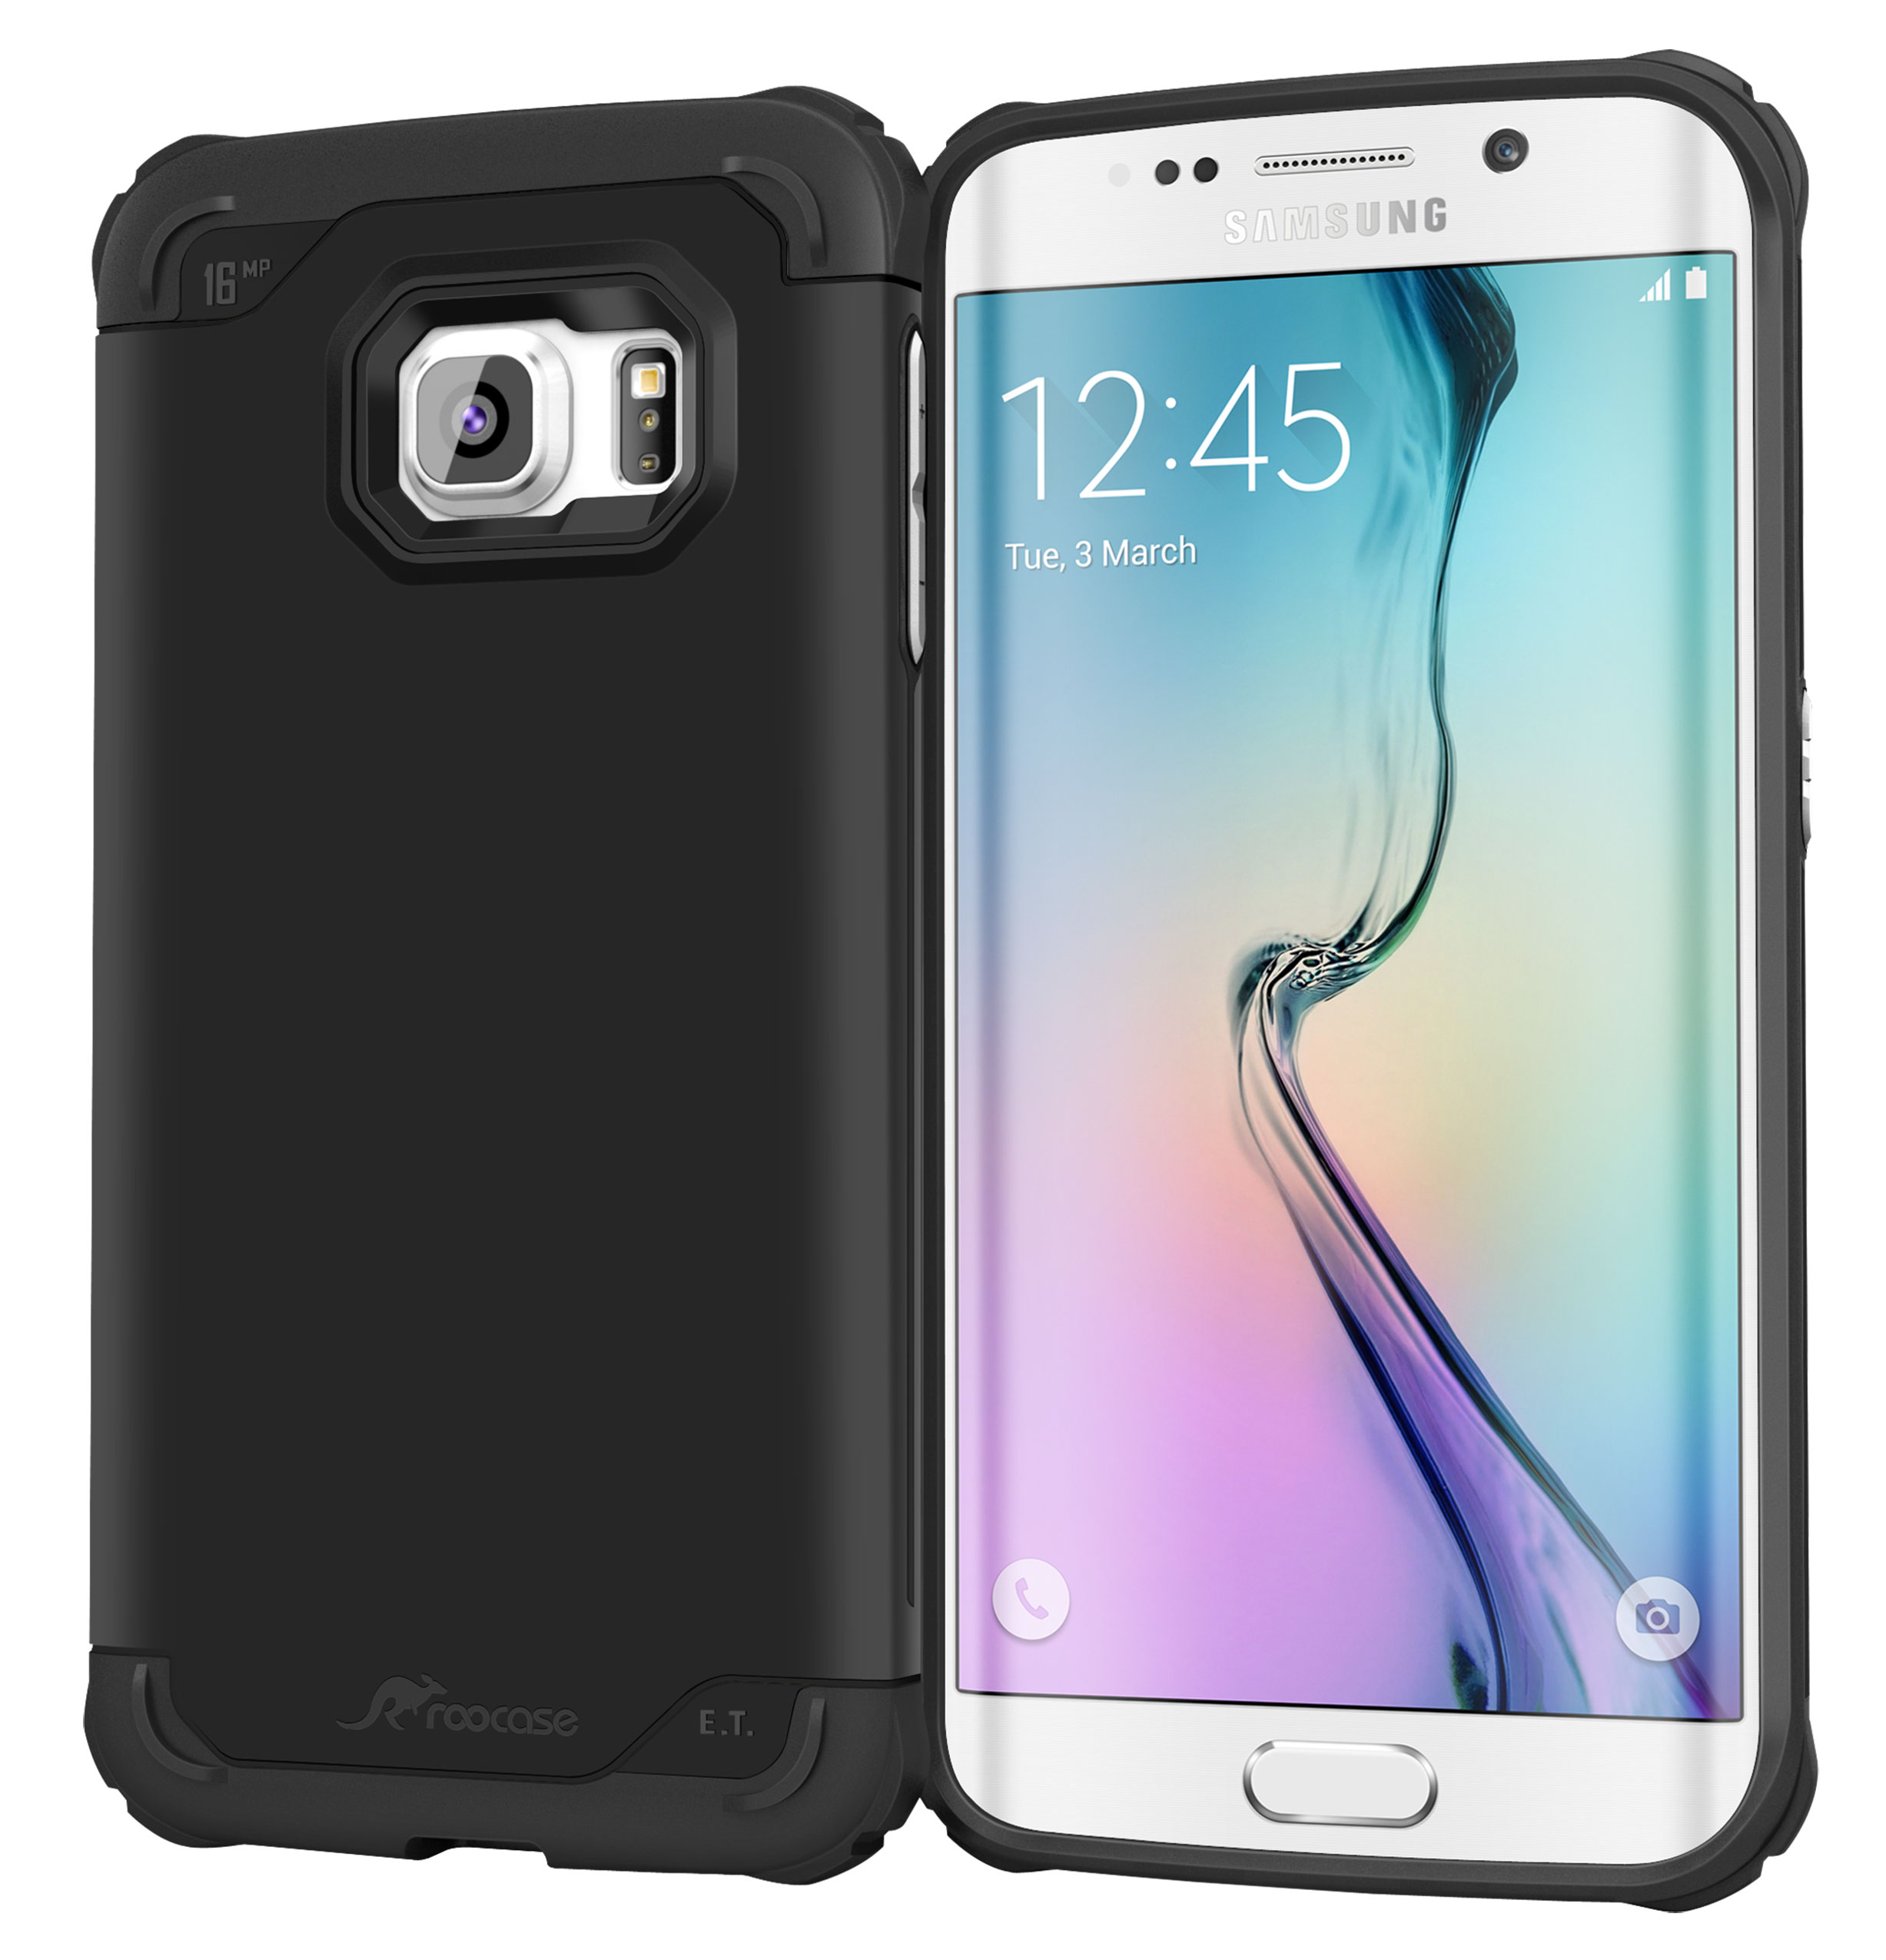 Galaxy S6 Edge Case, roocase [Exec Tough] Galaxy S6 Edge Slim Fit Case Hybrid PC / TPU [Corner Protection] Armor Cover Case for Samsung Galaxy S6 Edge (2015)